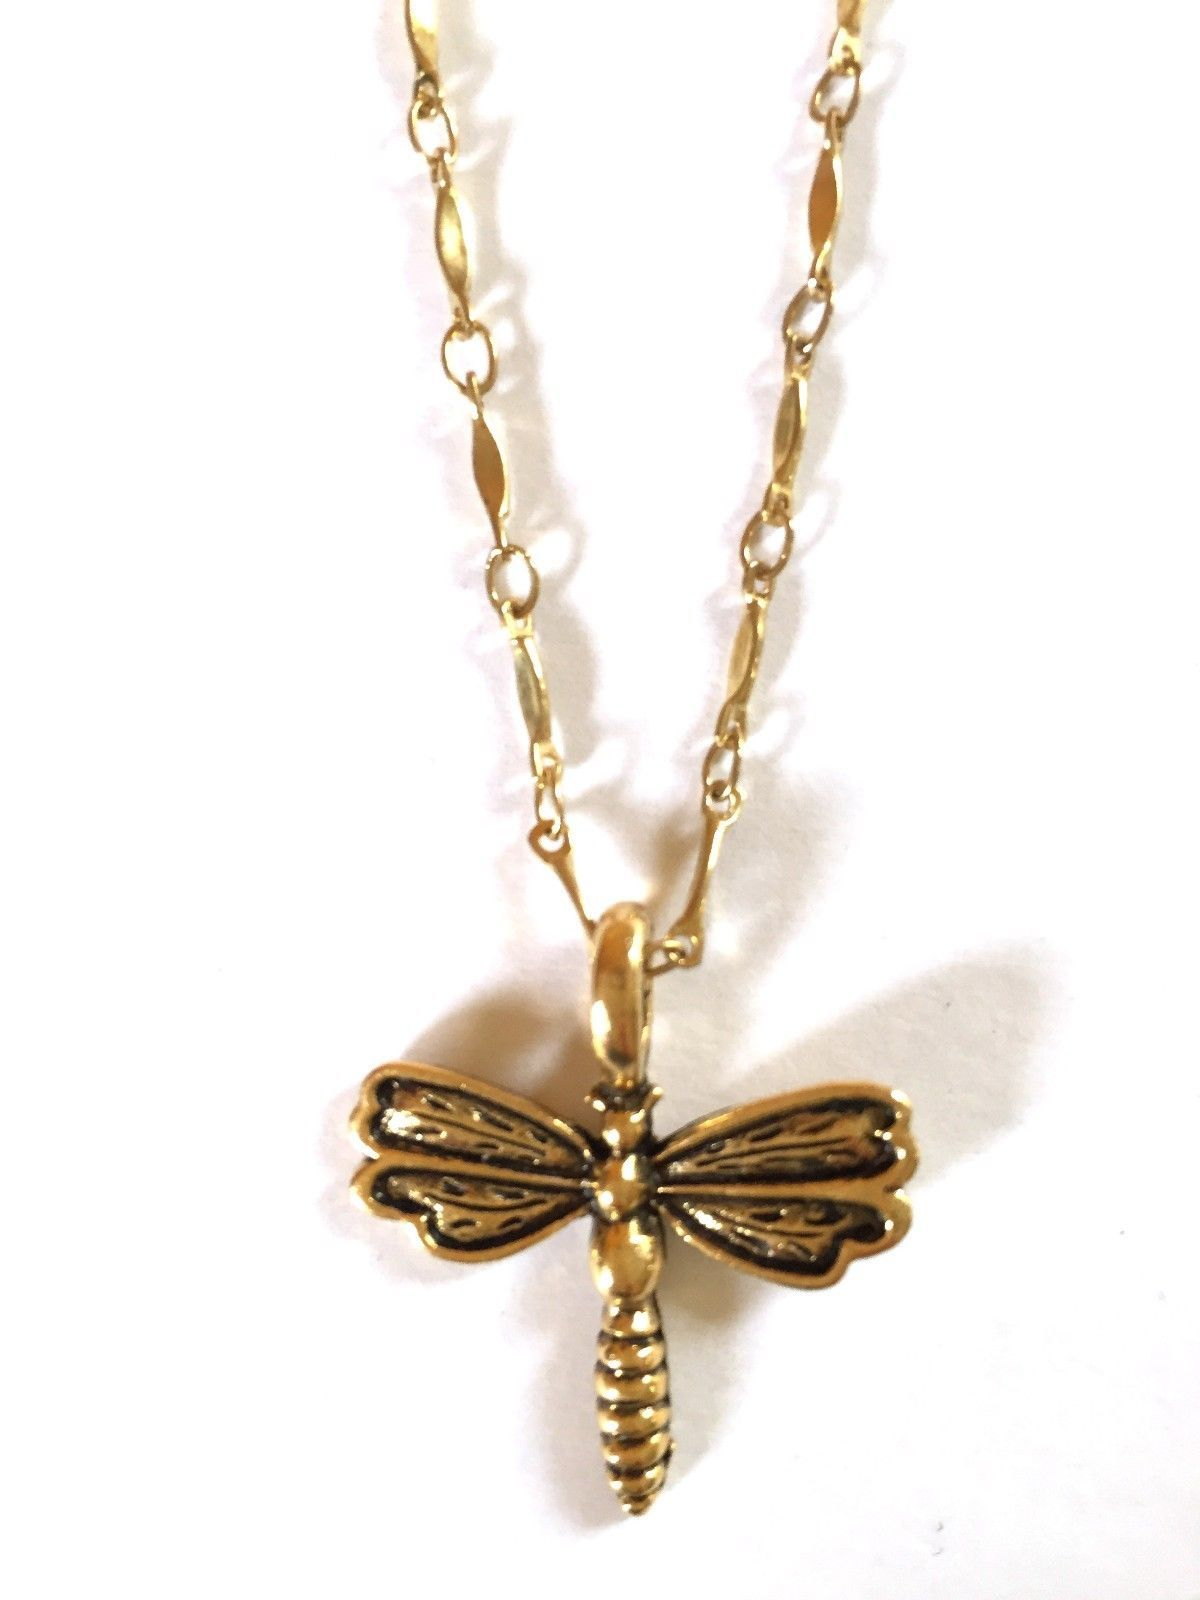 DragonFly Charm Necklace 16 inches Goldtone